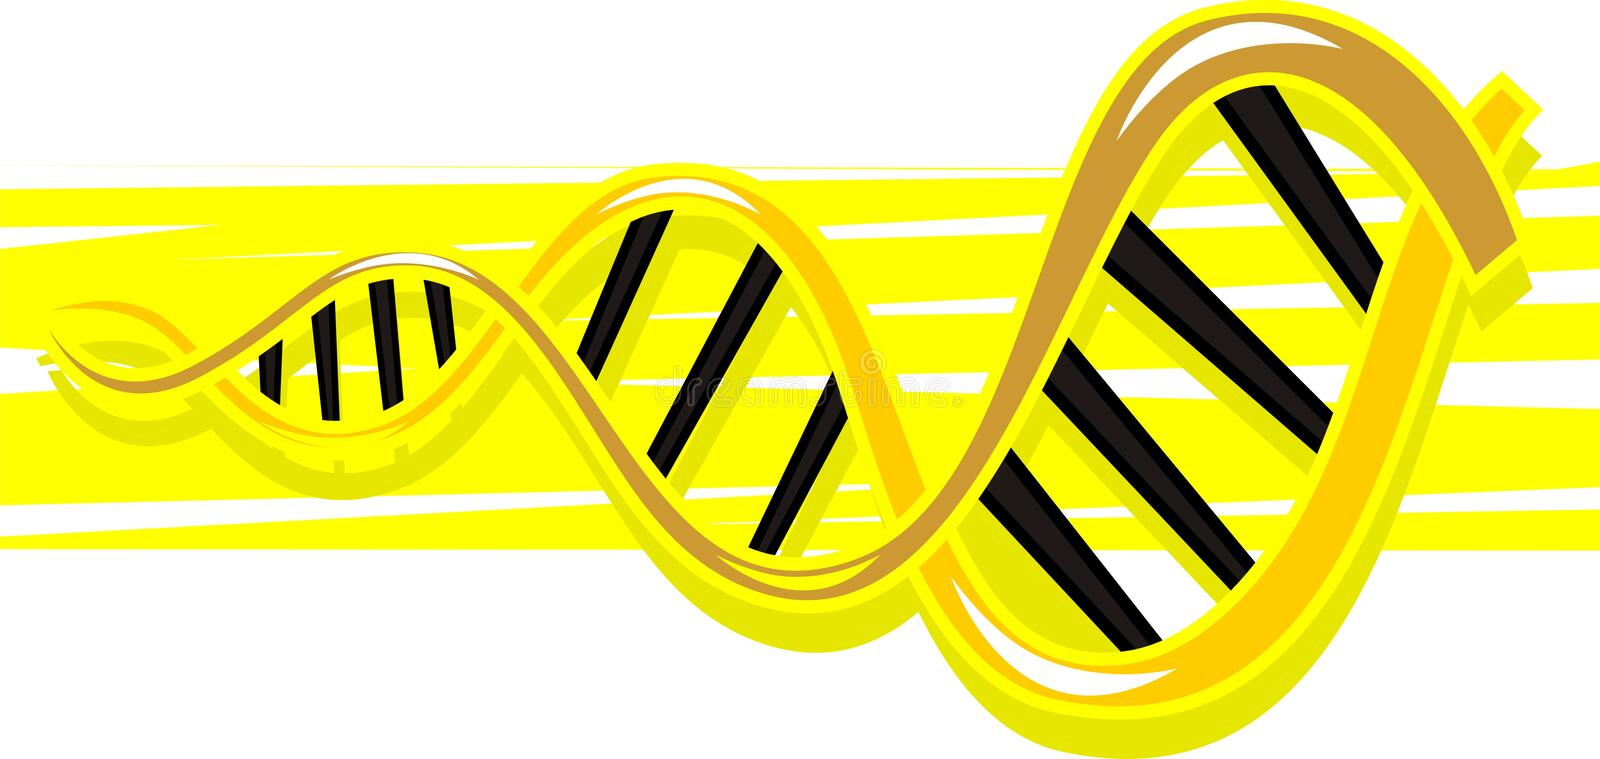 Download DNA model stock illustration. Image of life, contour - 21855889